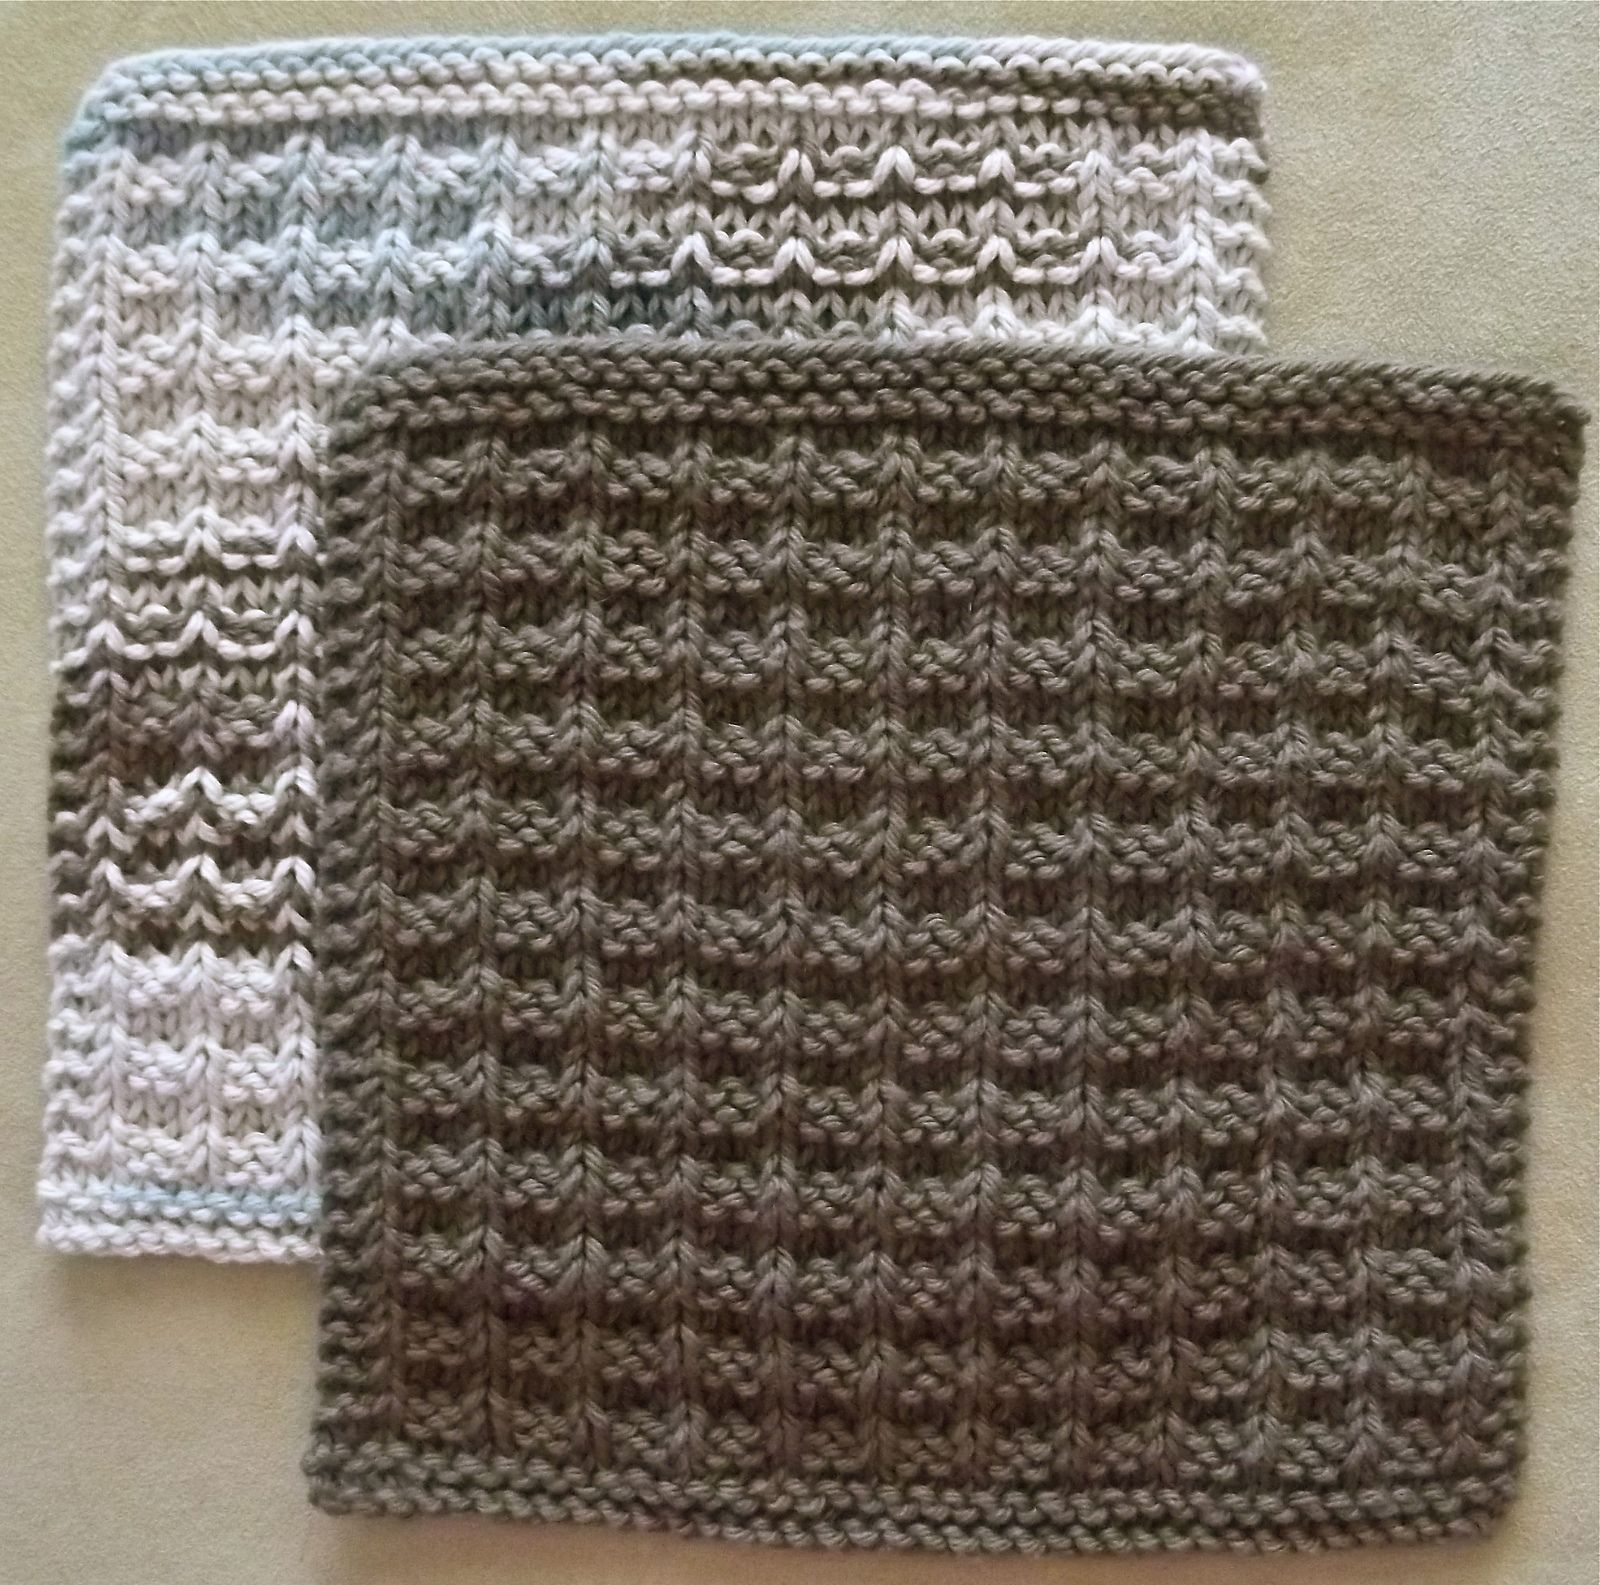 Noni\'s Favorite Kitchen Dishcloth - Free Knitting Pattern - (ravelry ...